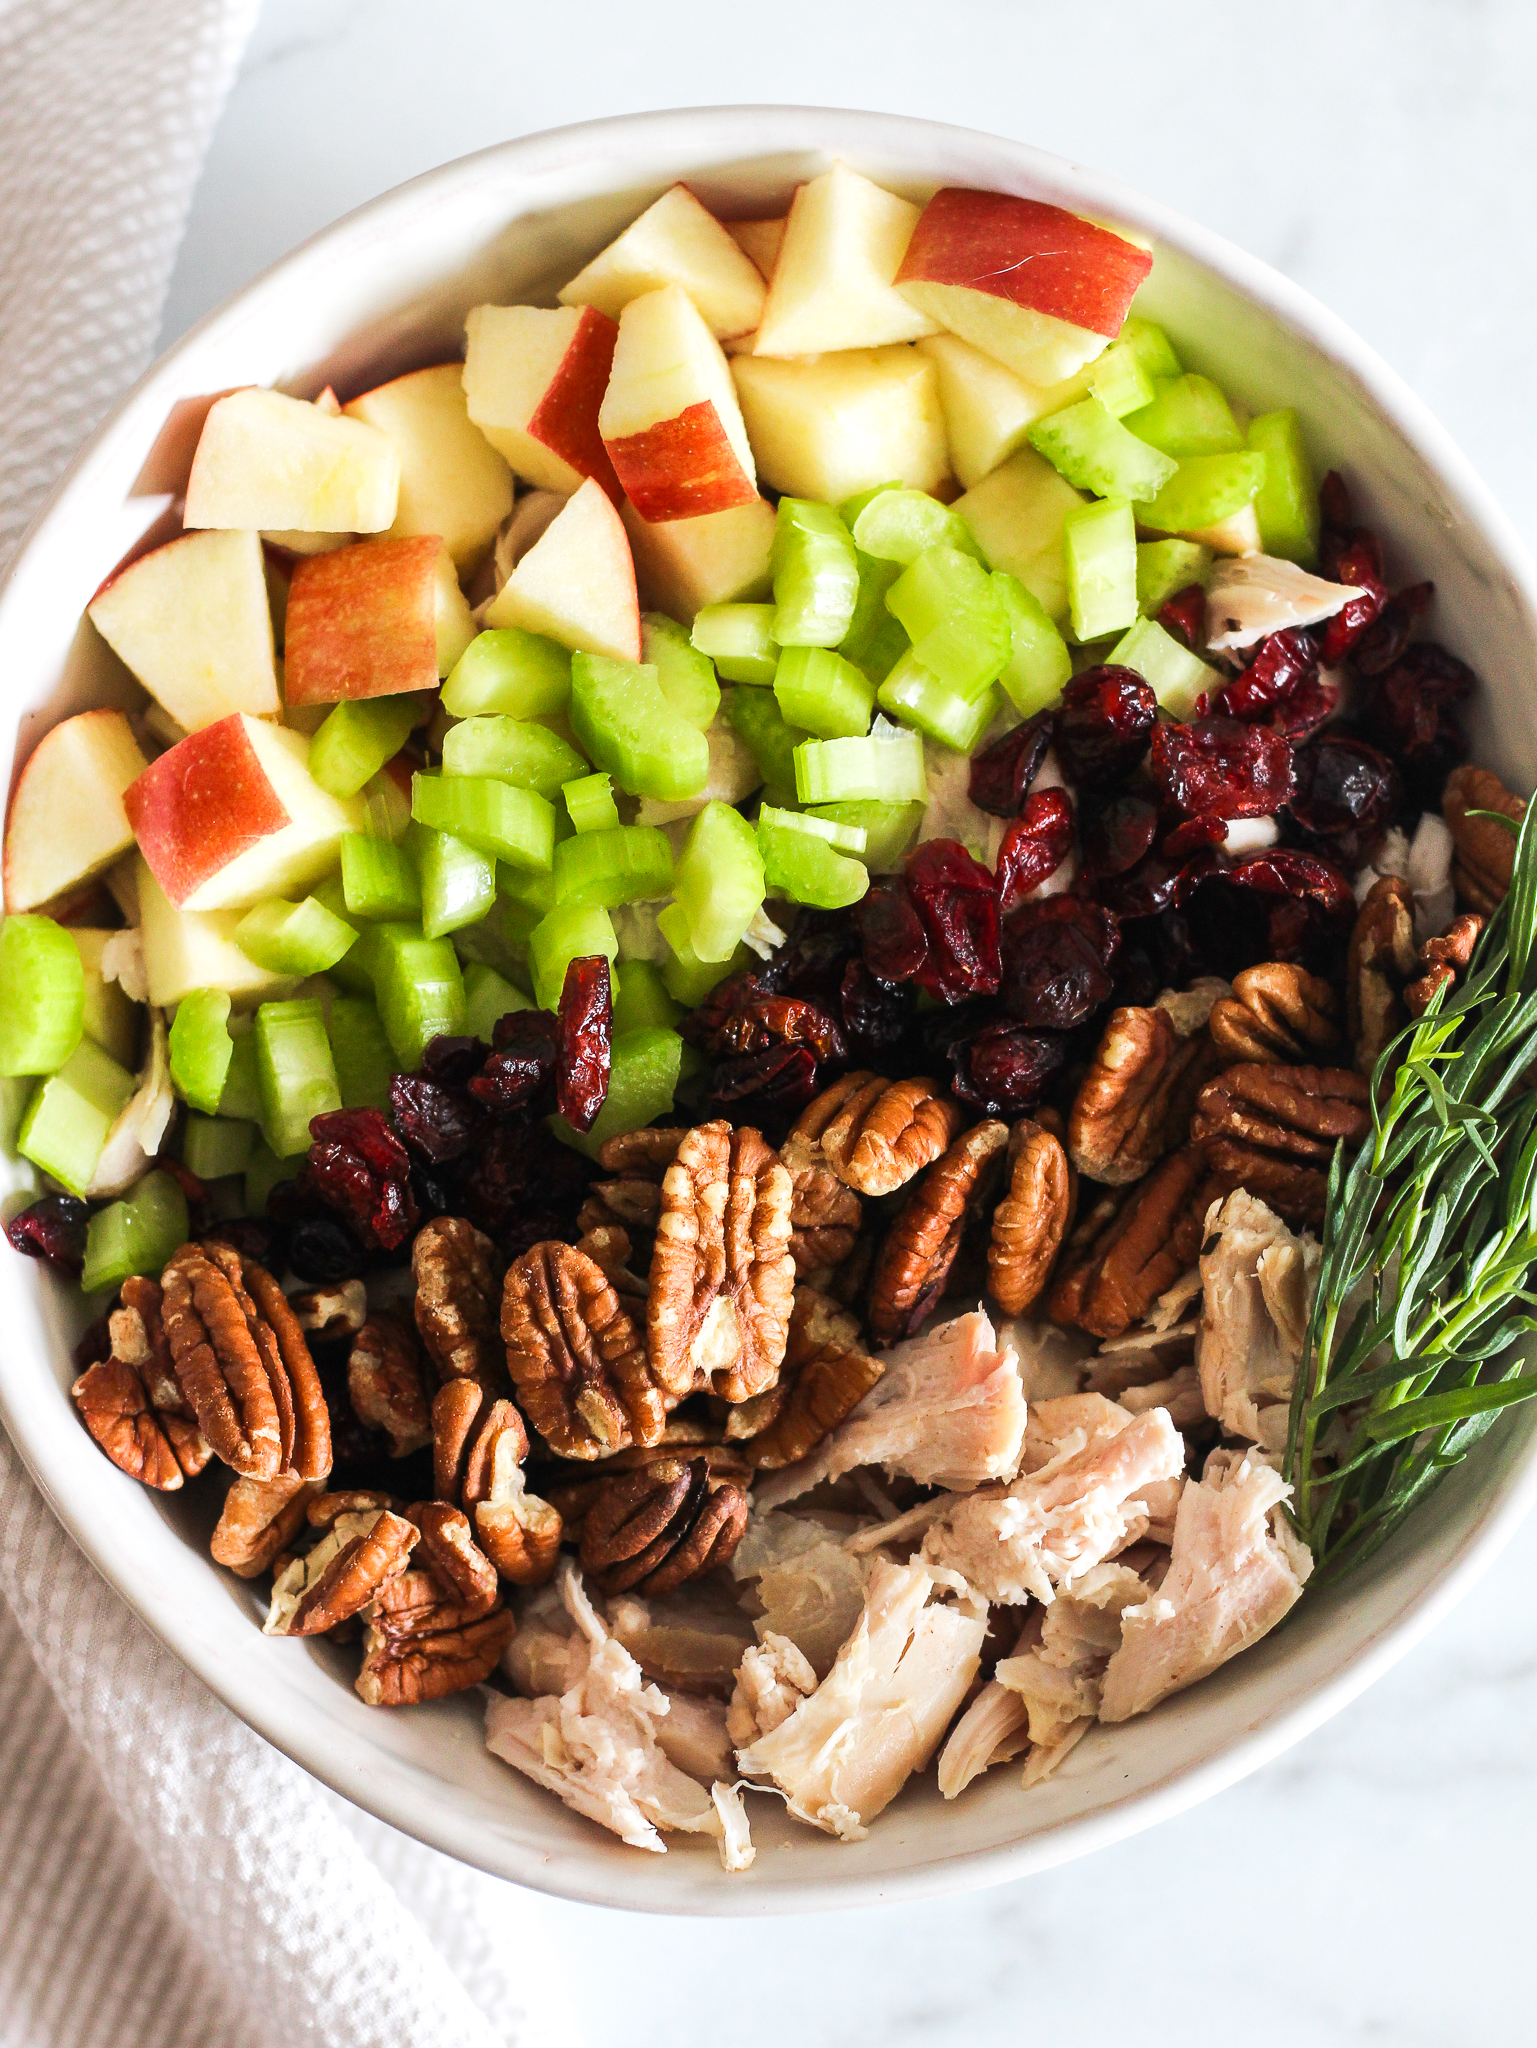 layers of apples, celery, cranberries, pecans, chicken and some tarragon in a white bowl